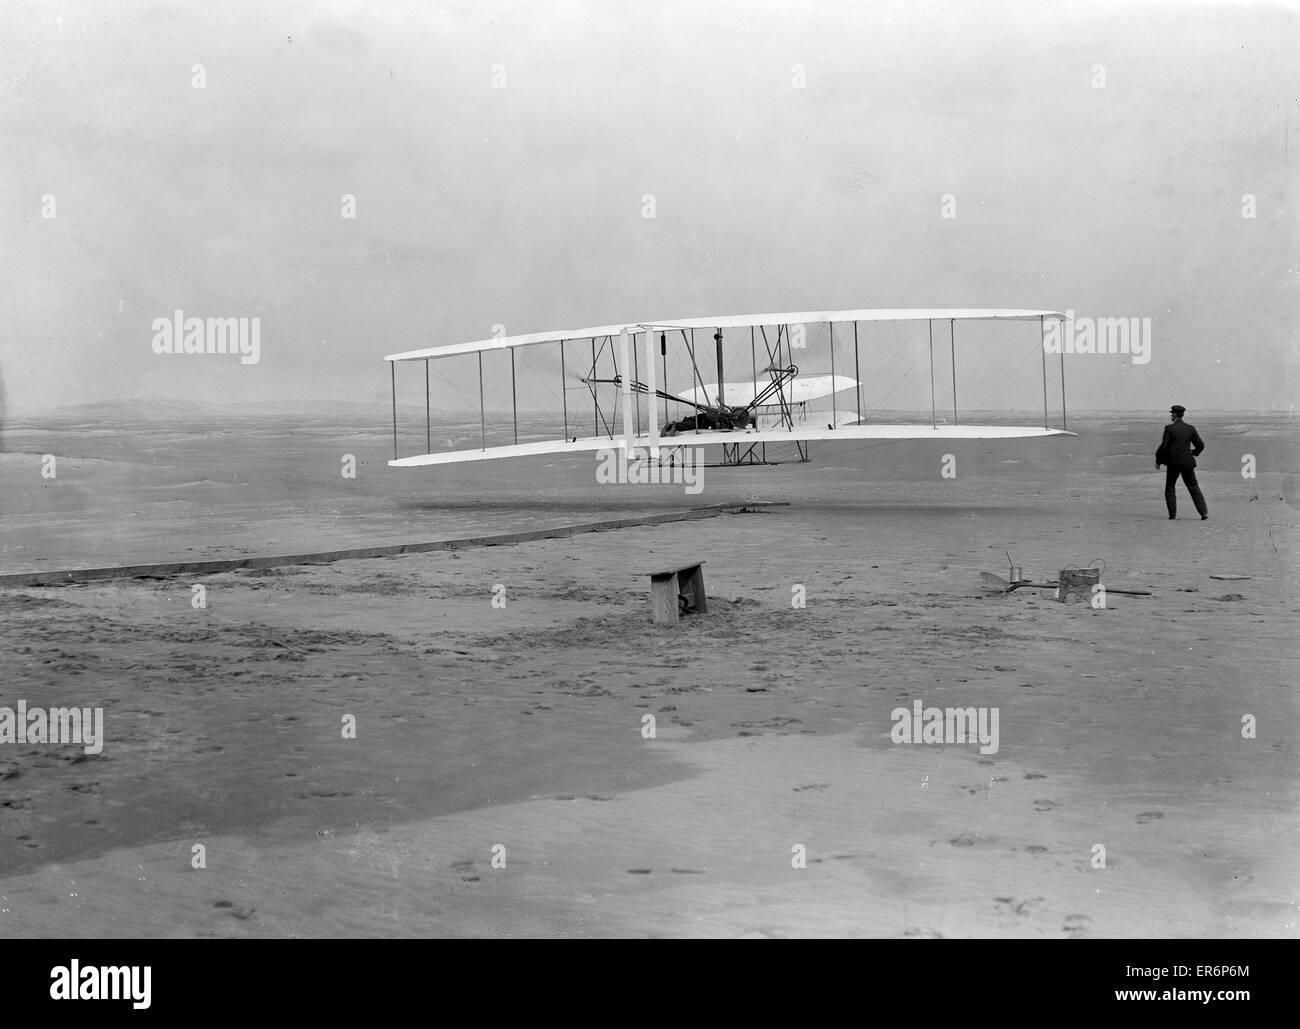 First flight, 120 feet in 12 seconds, 10:35 a.m.; Kitty Hawk, North Carolina. Photograph shows the first powered, - Stock Image